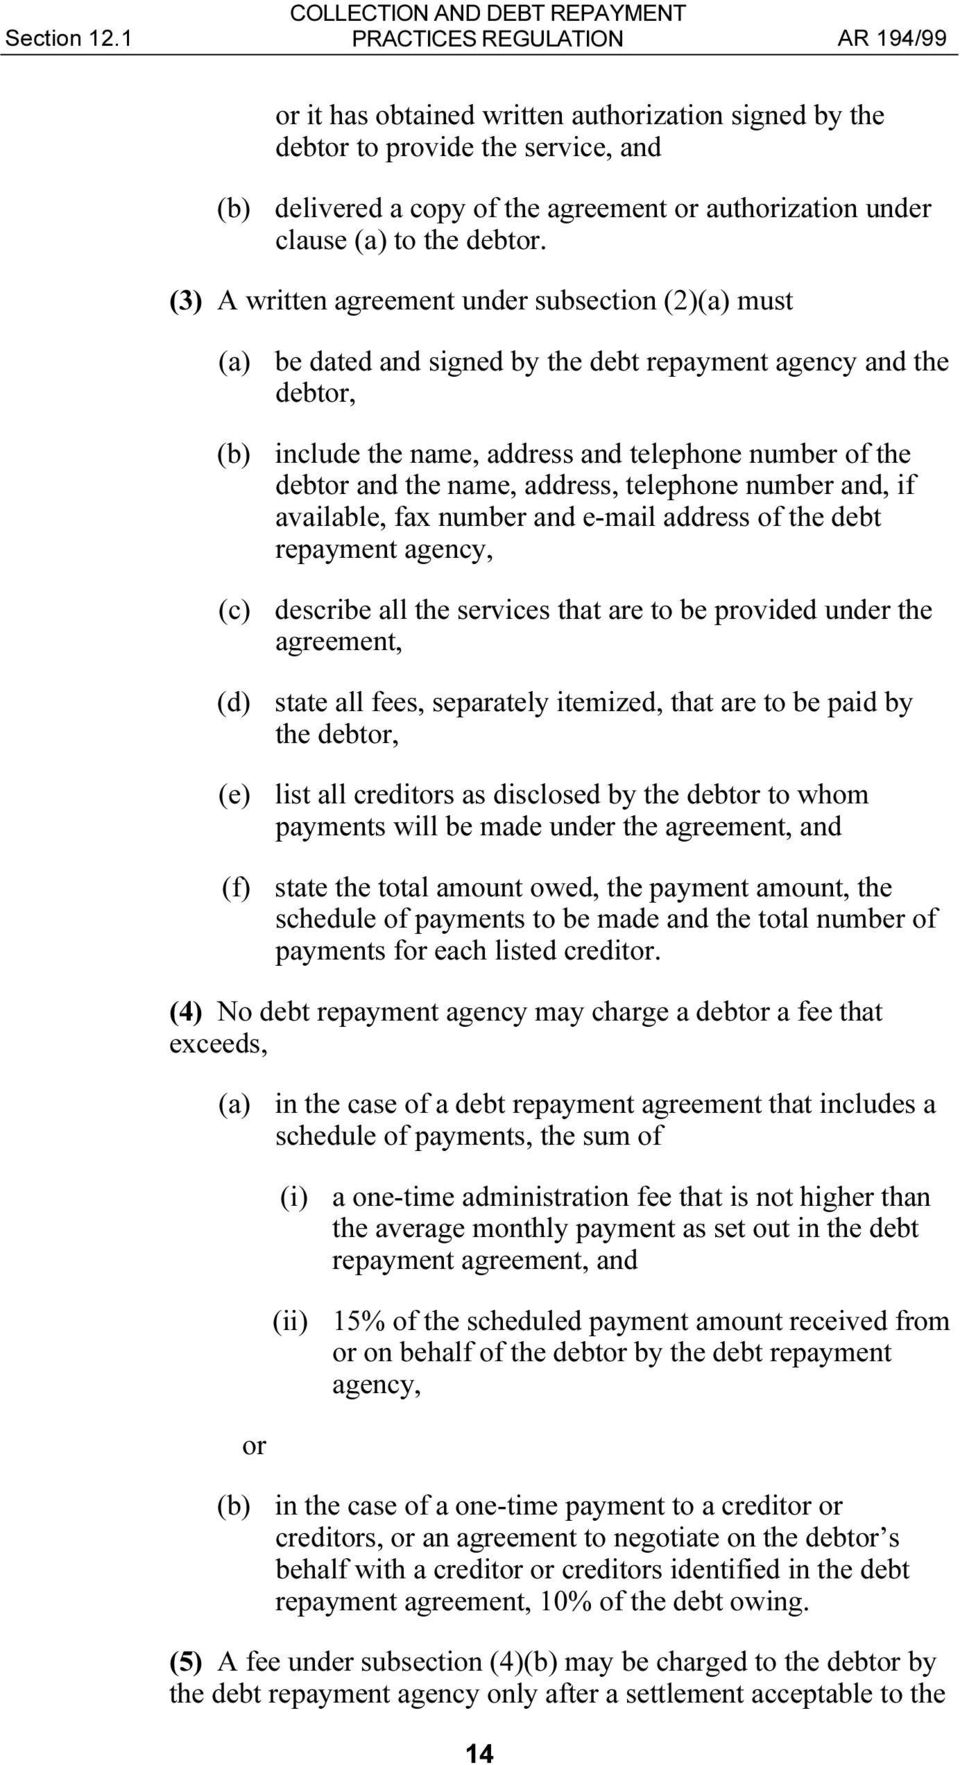 (3) A written agreement under subsection (2)(a) must (a) be dated and signed by the debt repayment agency and the debtor, (b) include the name, address and telephone number of the debtor and the